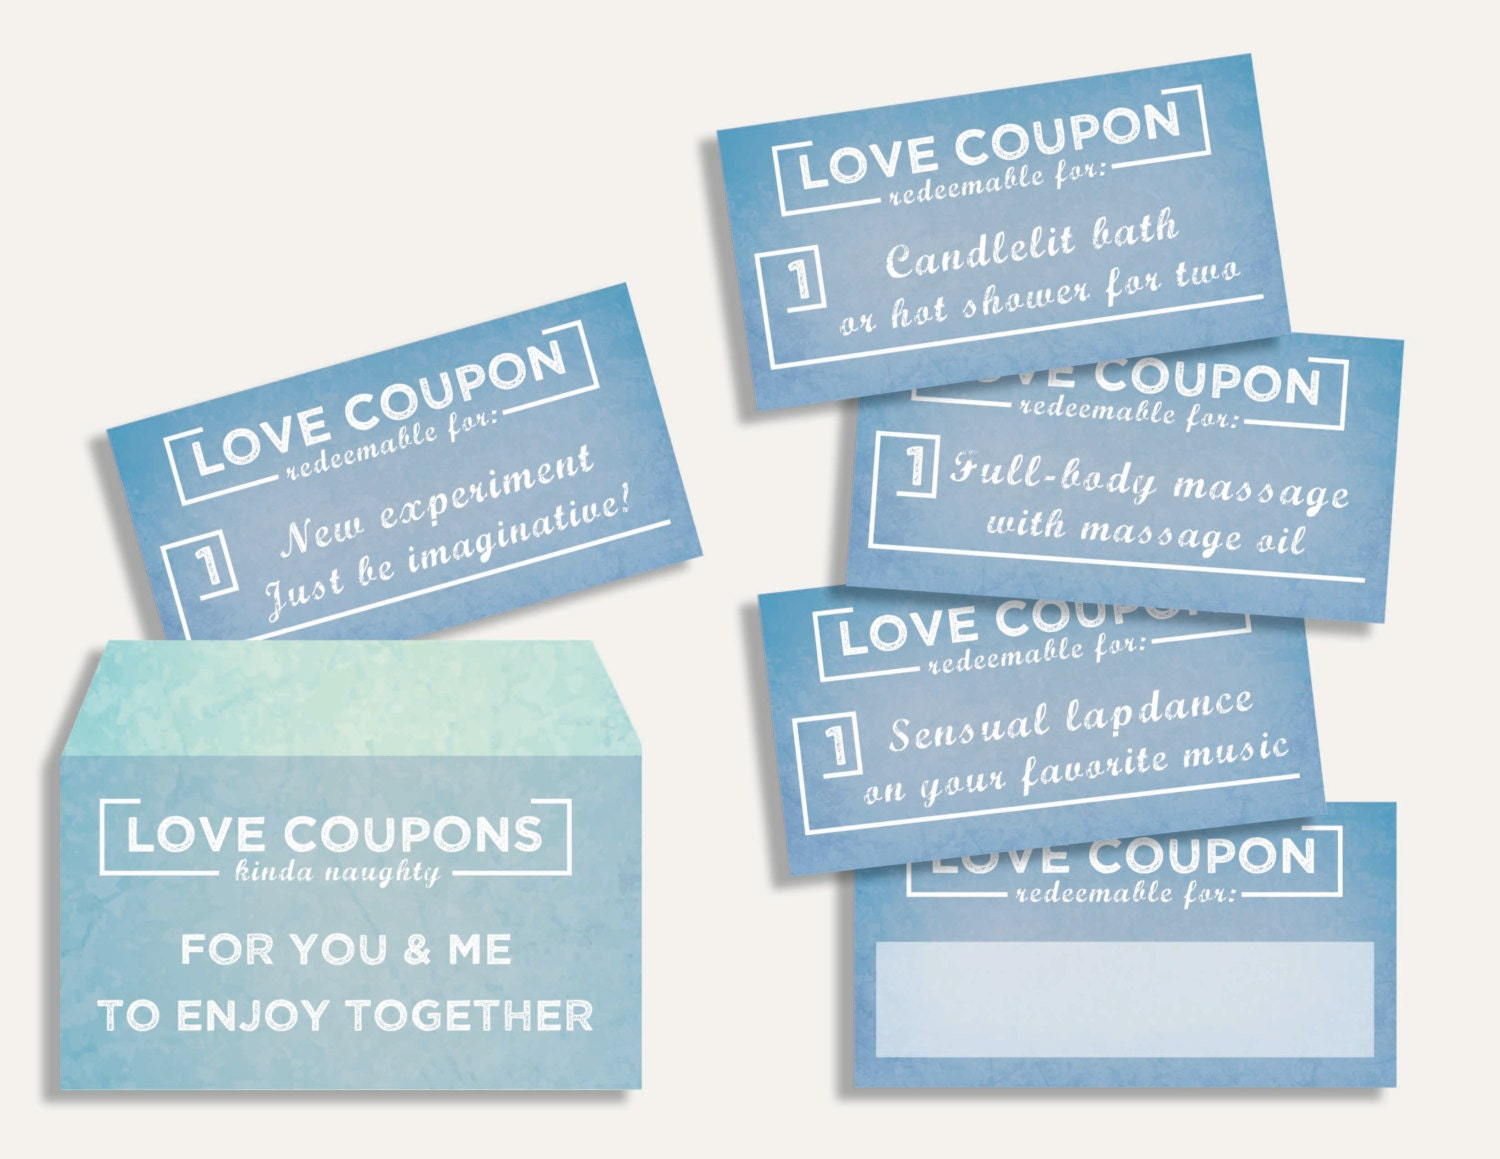 Romantic coupons for wife